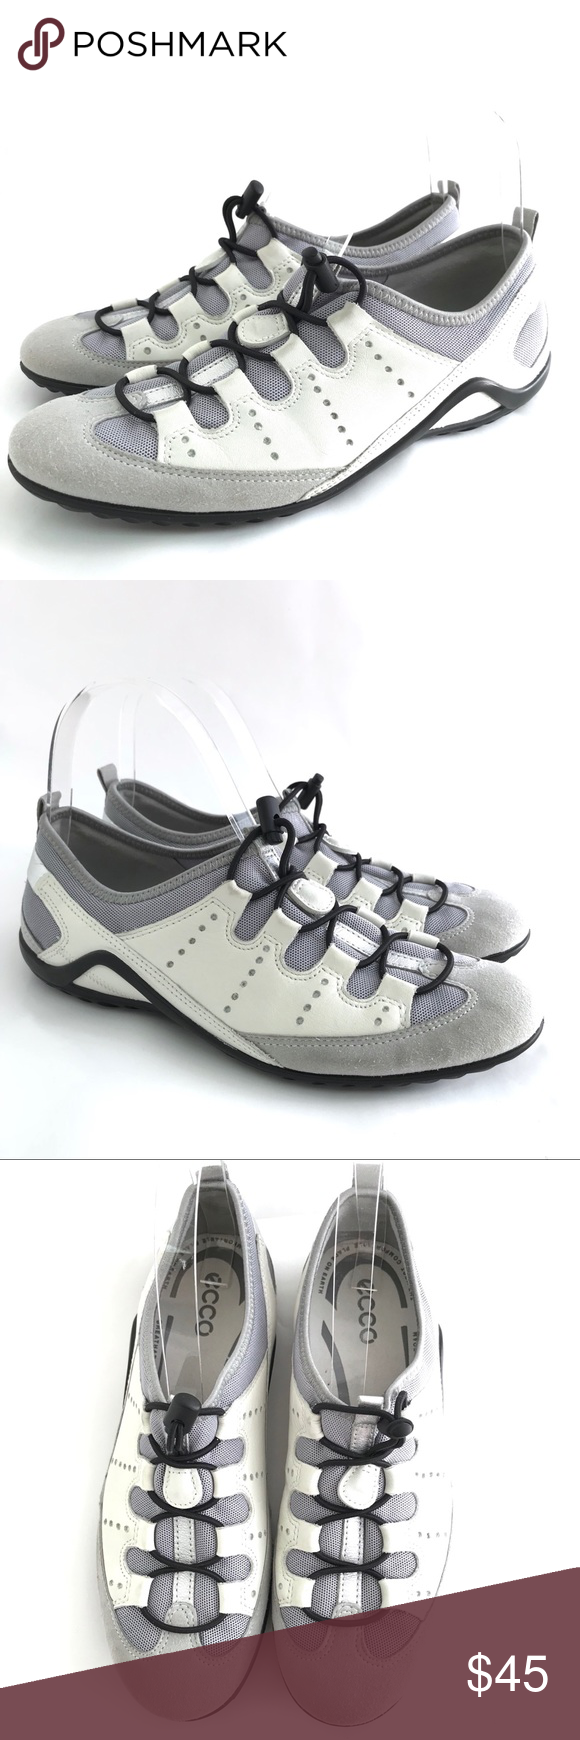 new arrival authentic great deals 2017 Ecco Vibration II 39 Toggle Sneakers Comfort Shoes Brand ...